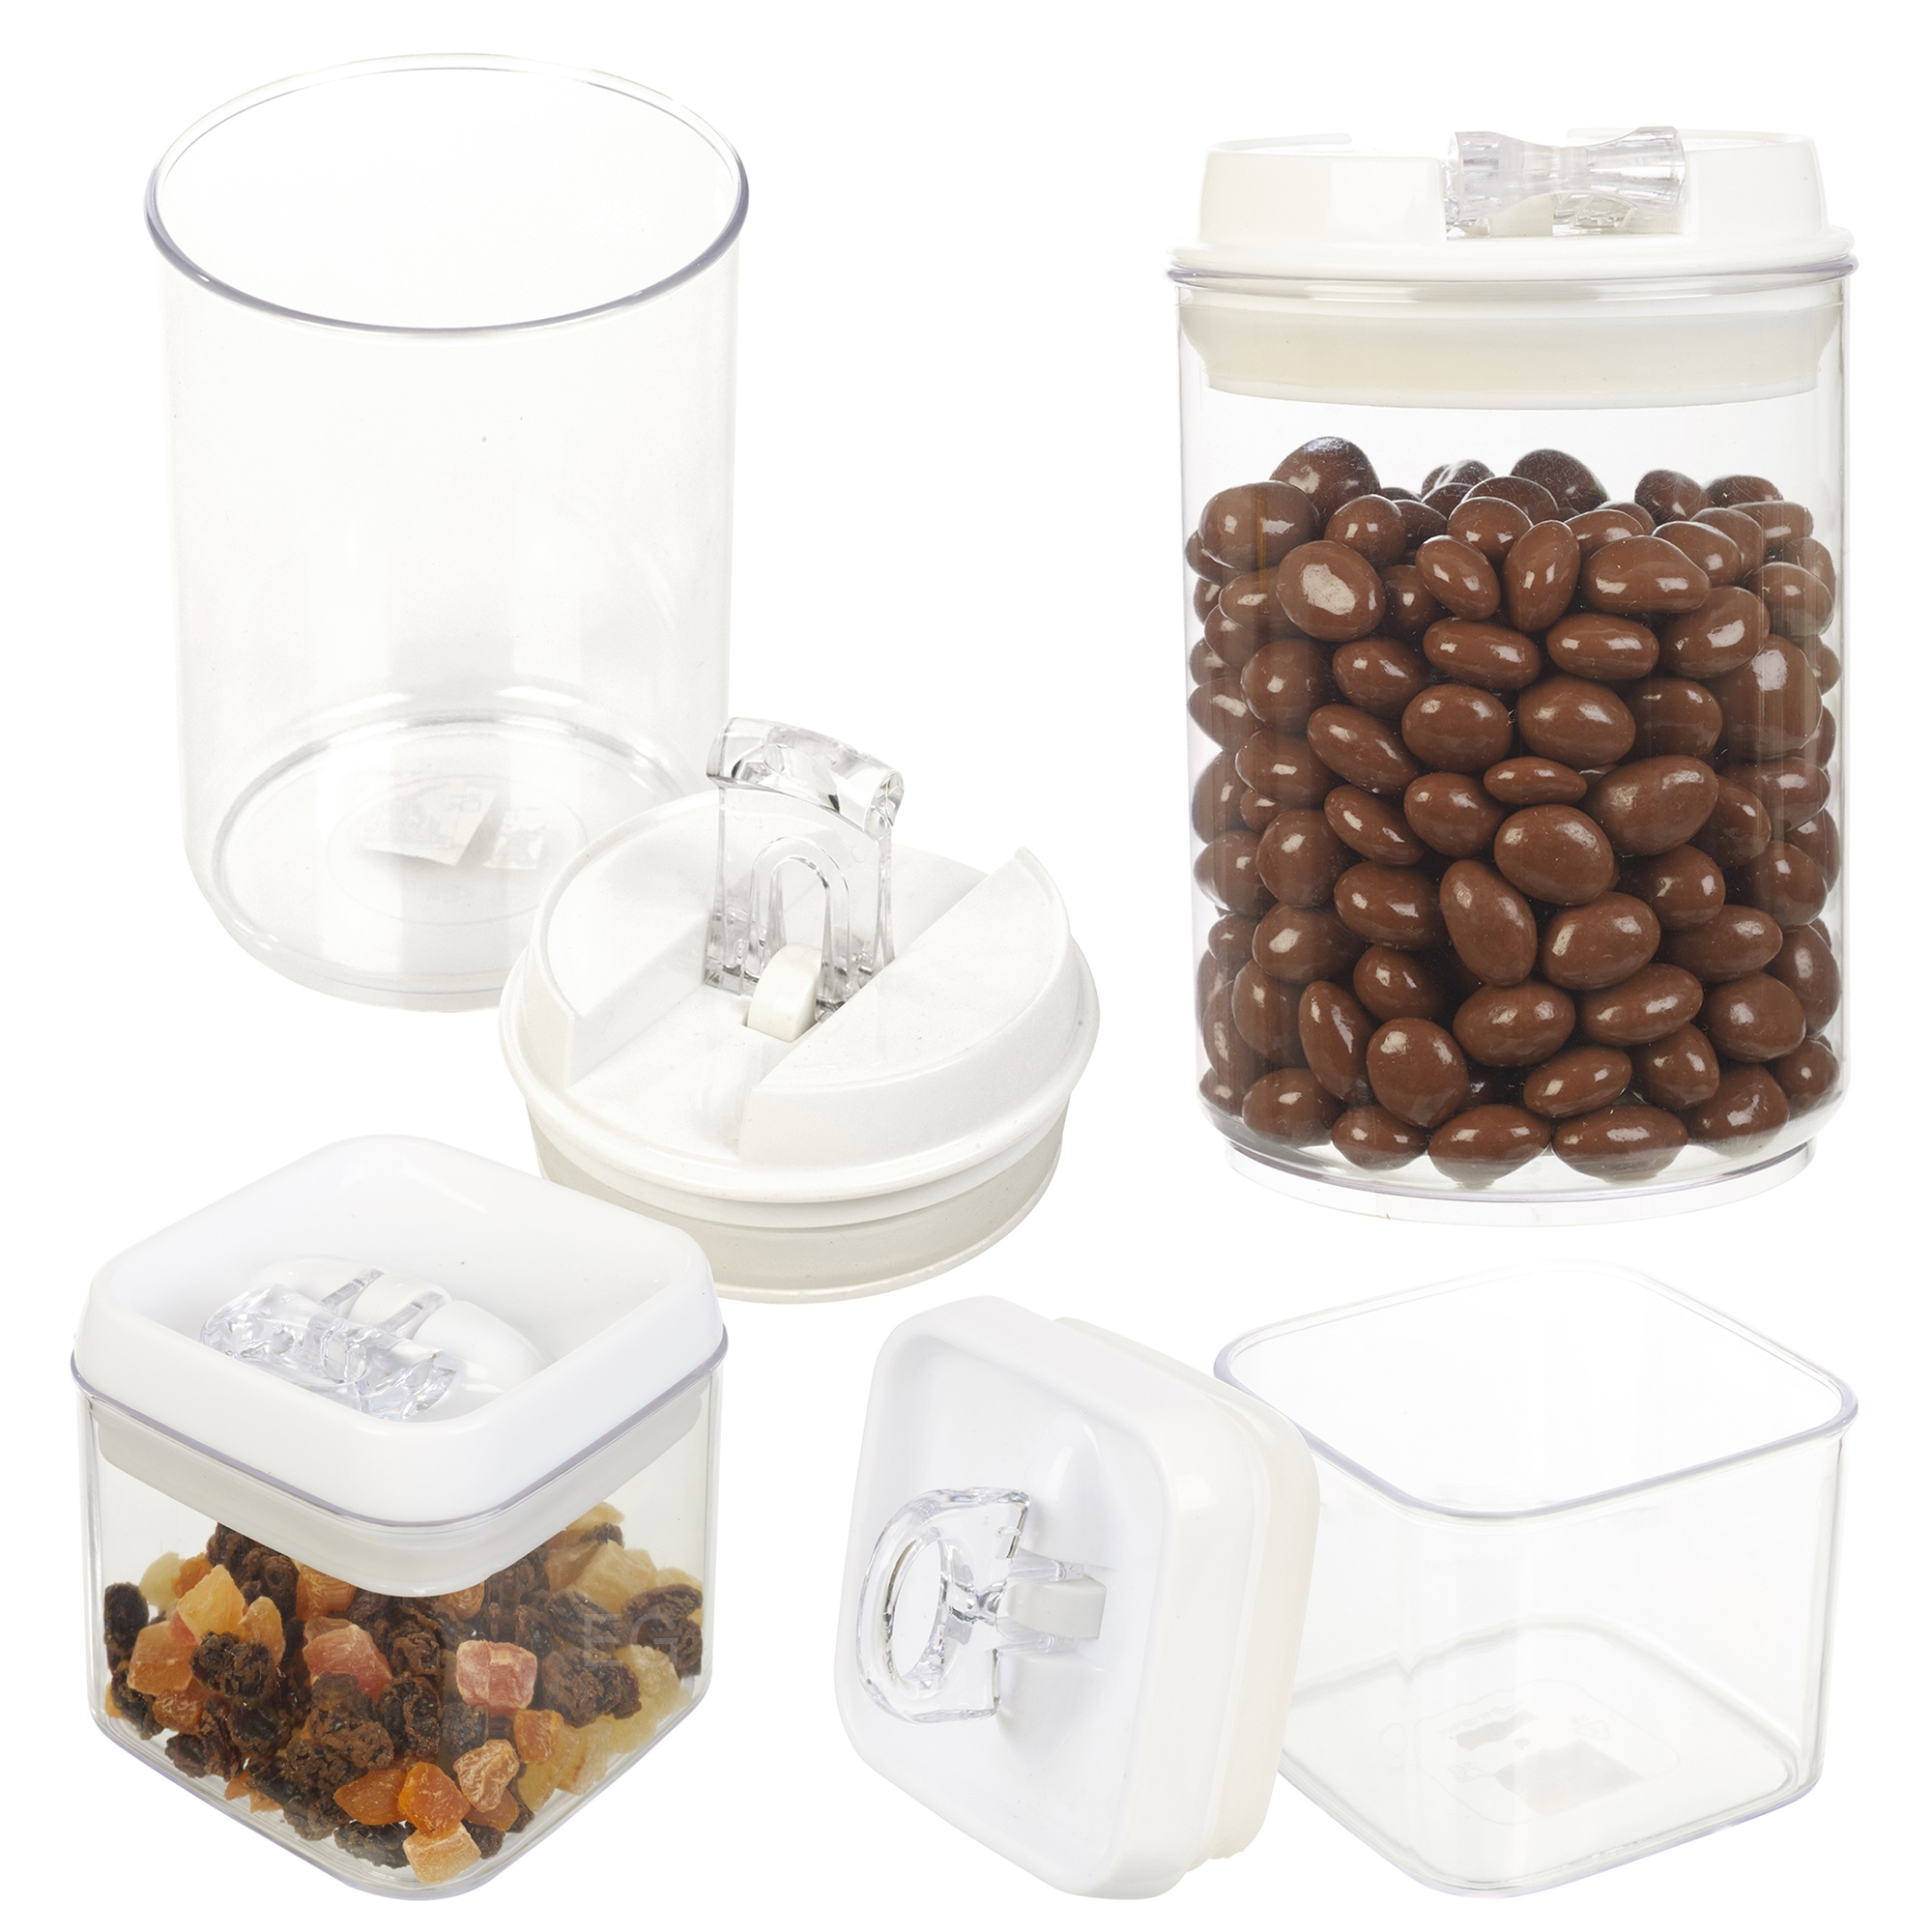 Acrylic Food Storage Containers Part - 15: Item Specifics